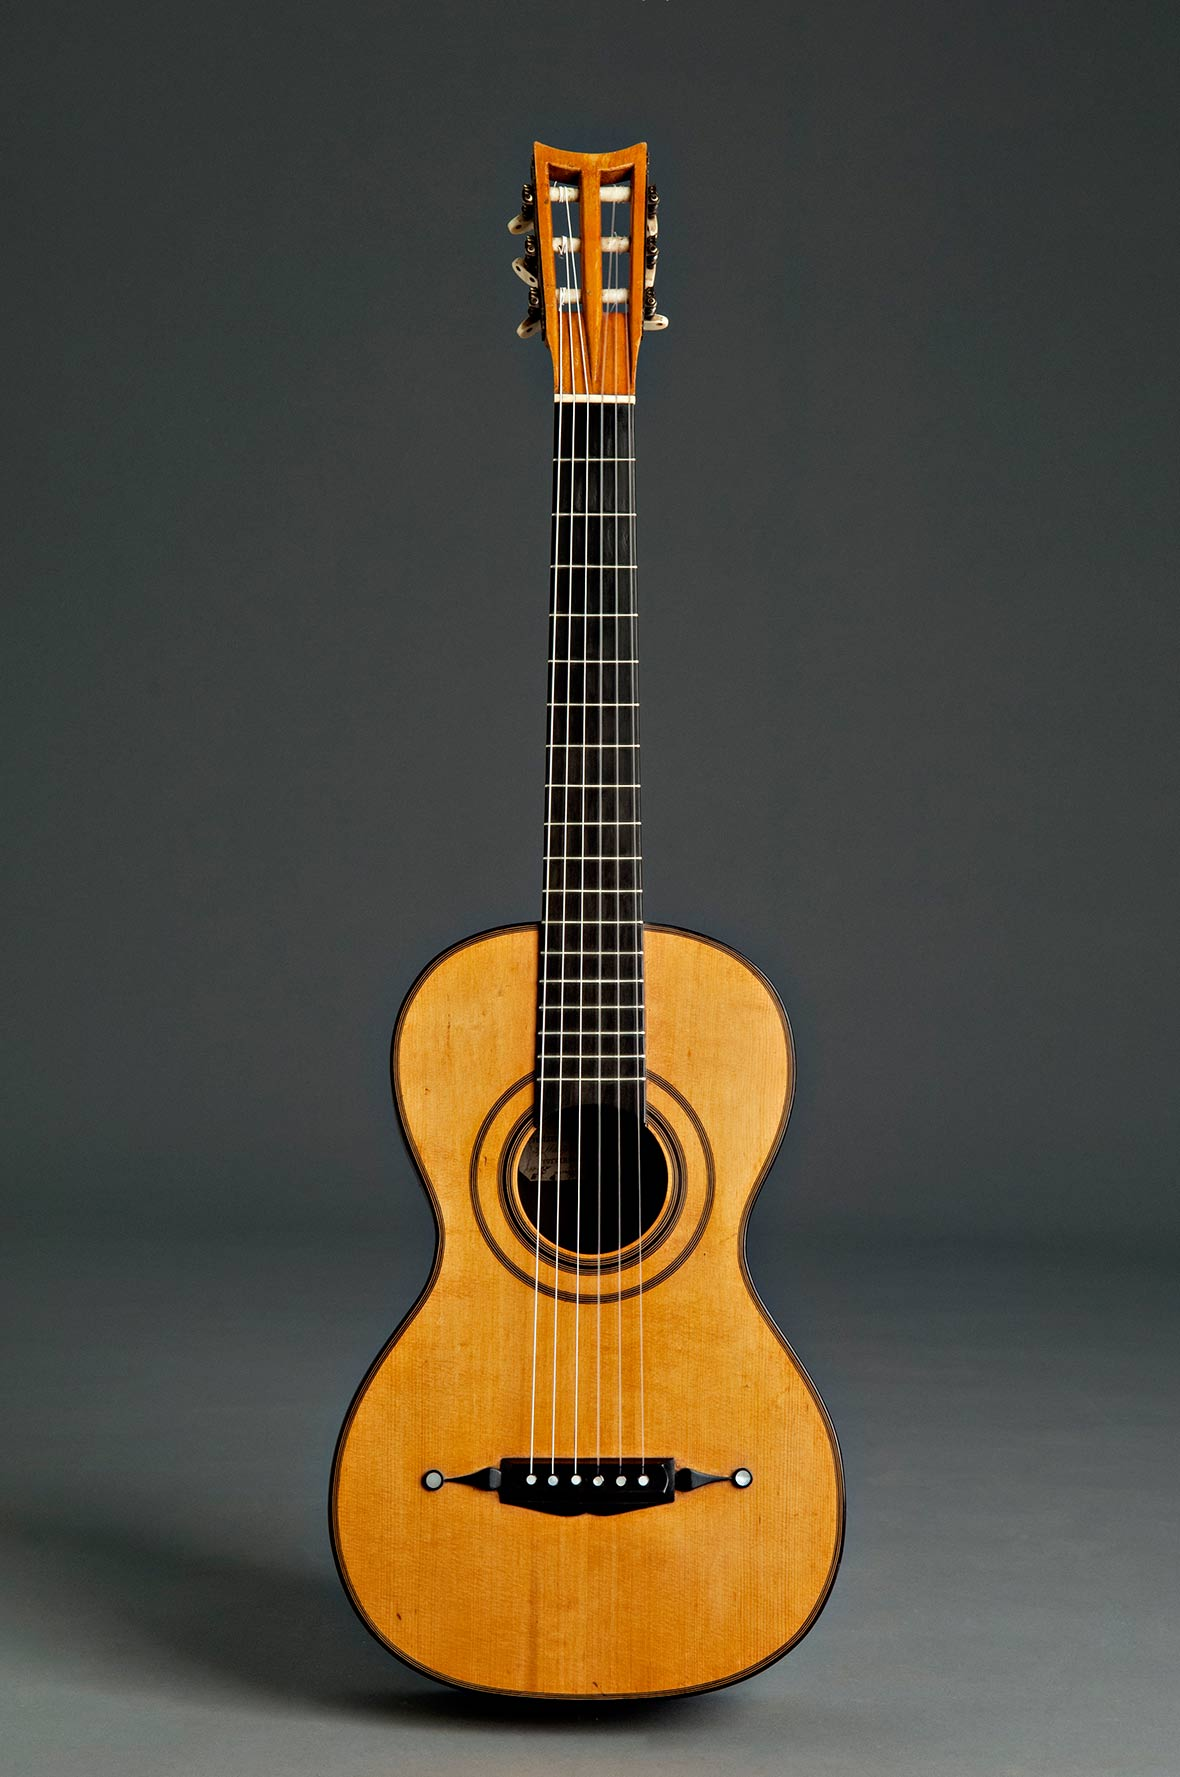 Panormo guitar (historical copy)